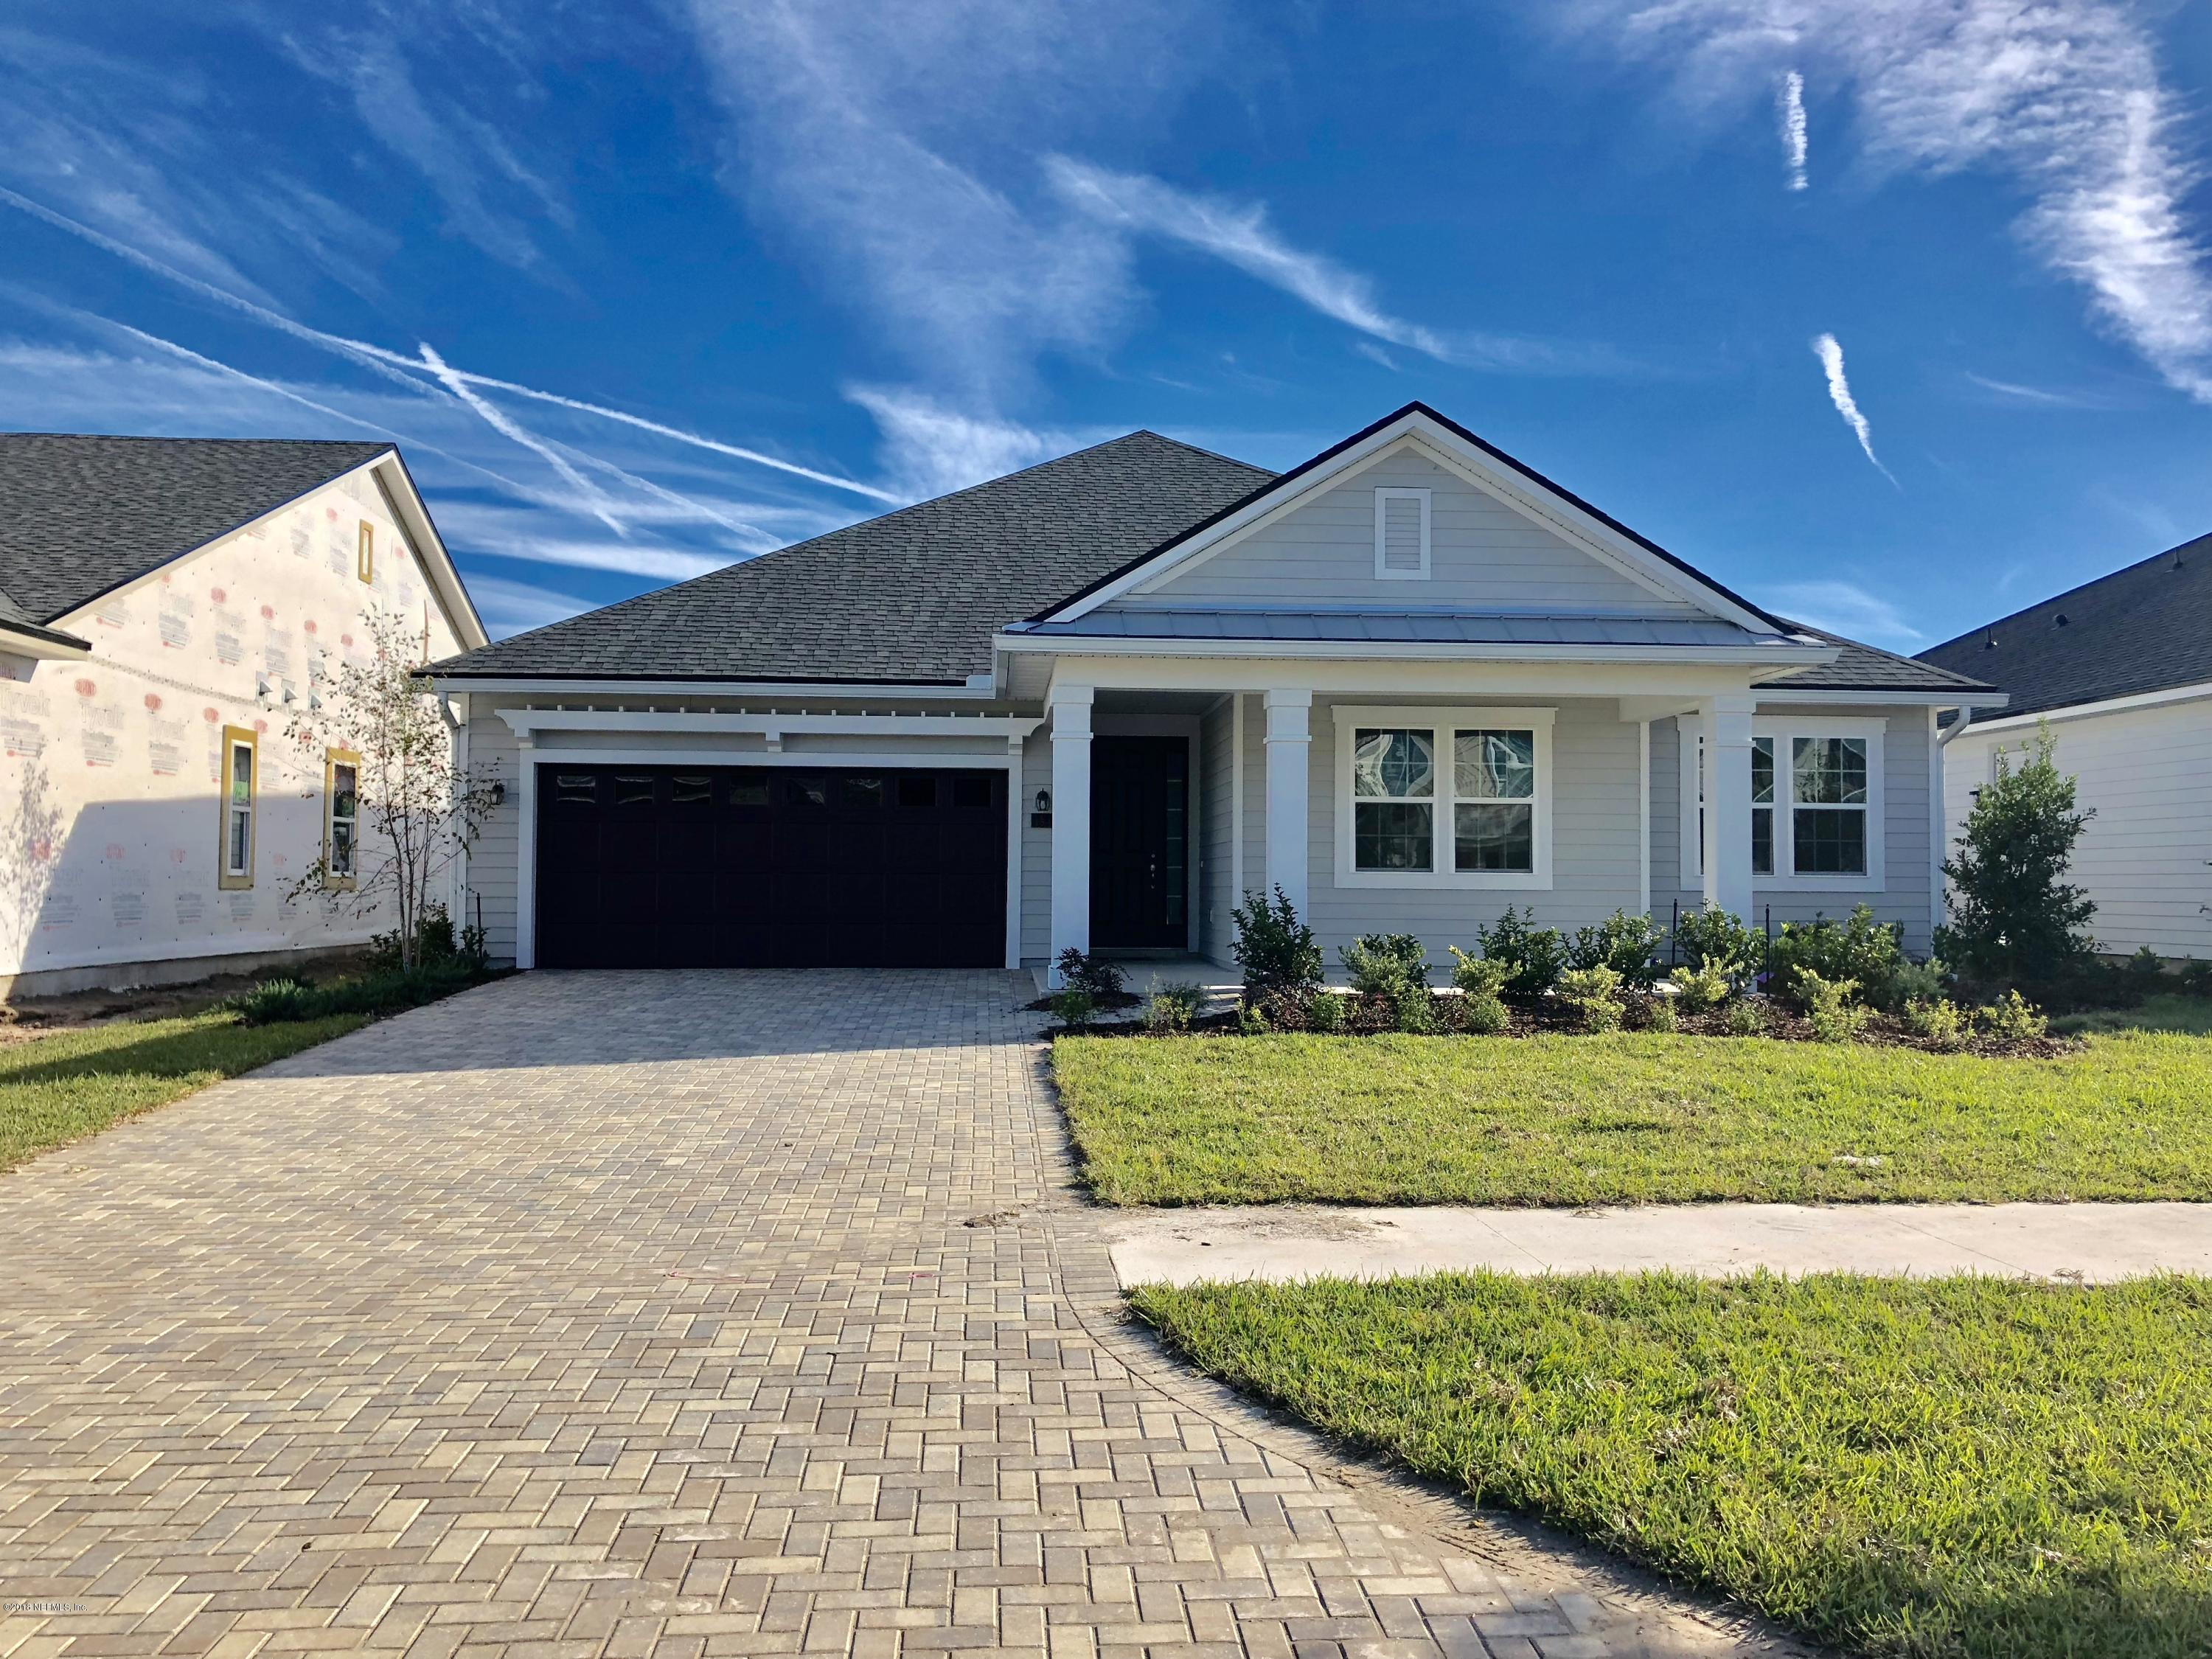 154 PALISADE, ST AUGUSTINE, FLORIDA 32092, 3 Bedrooms Bedrooms, ,3 BathroomsBathrooms,Residential - single family,For sale,PALISADE,920652